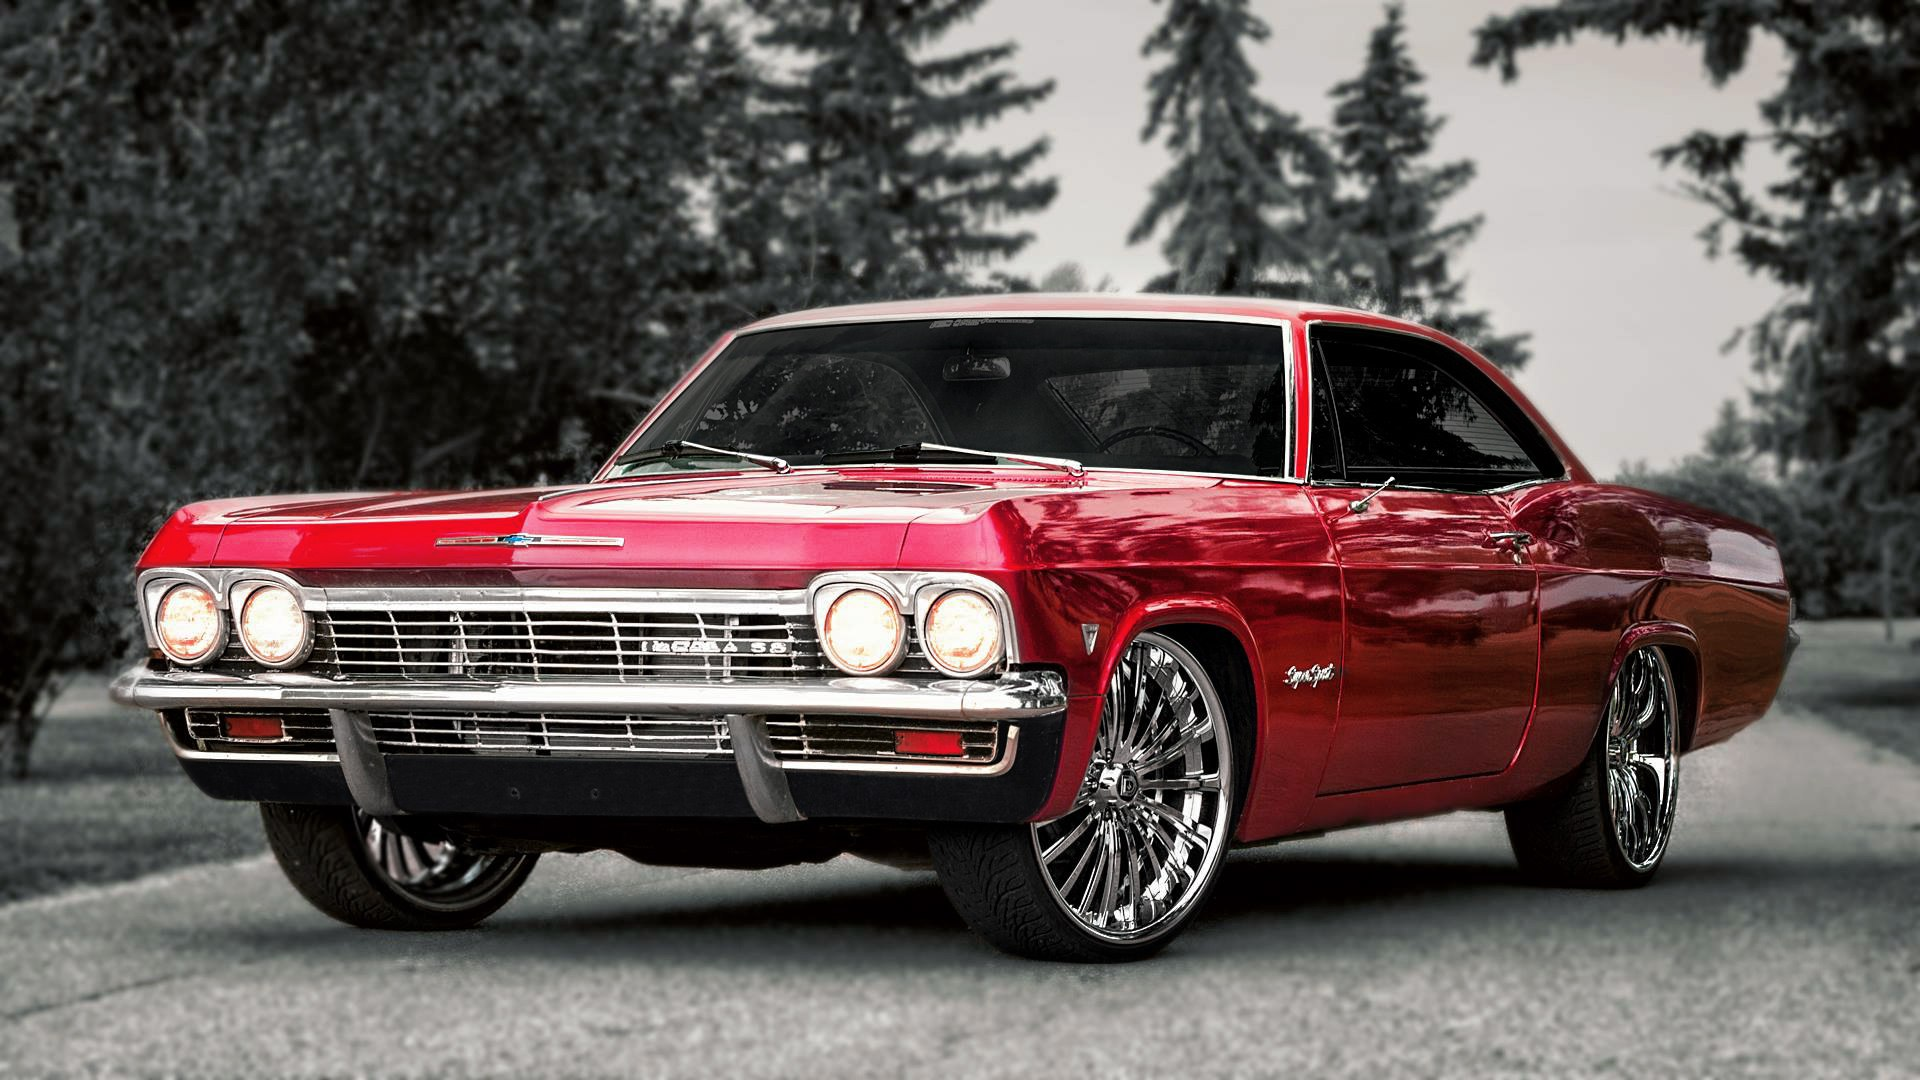 gorgeous chevrolet impala wallpaper full hd pictures